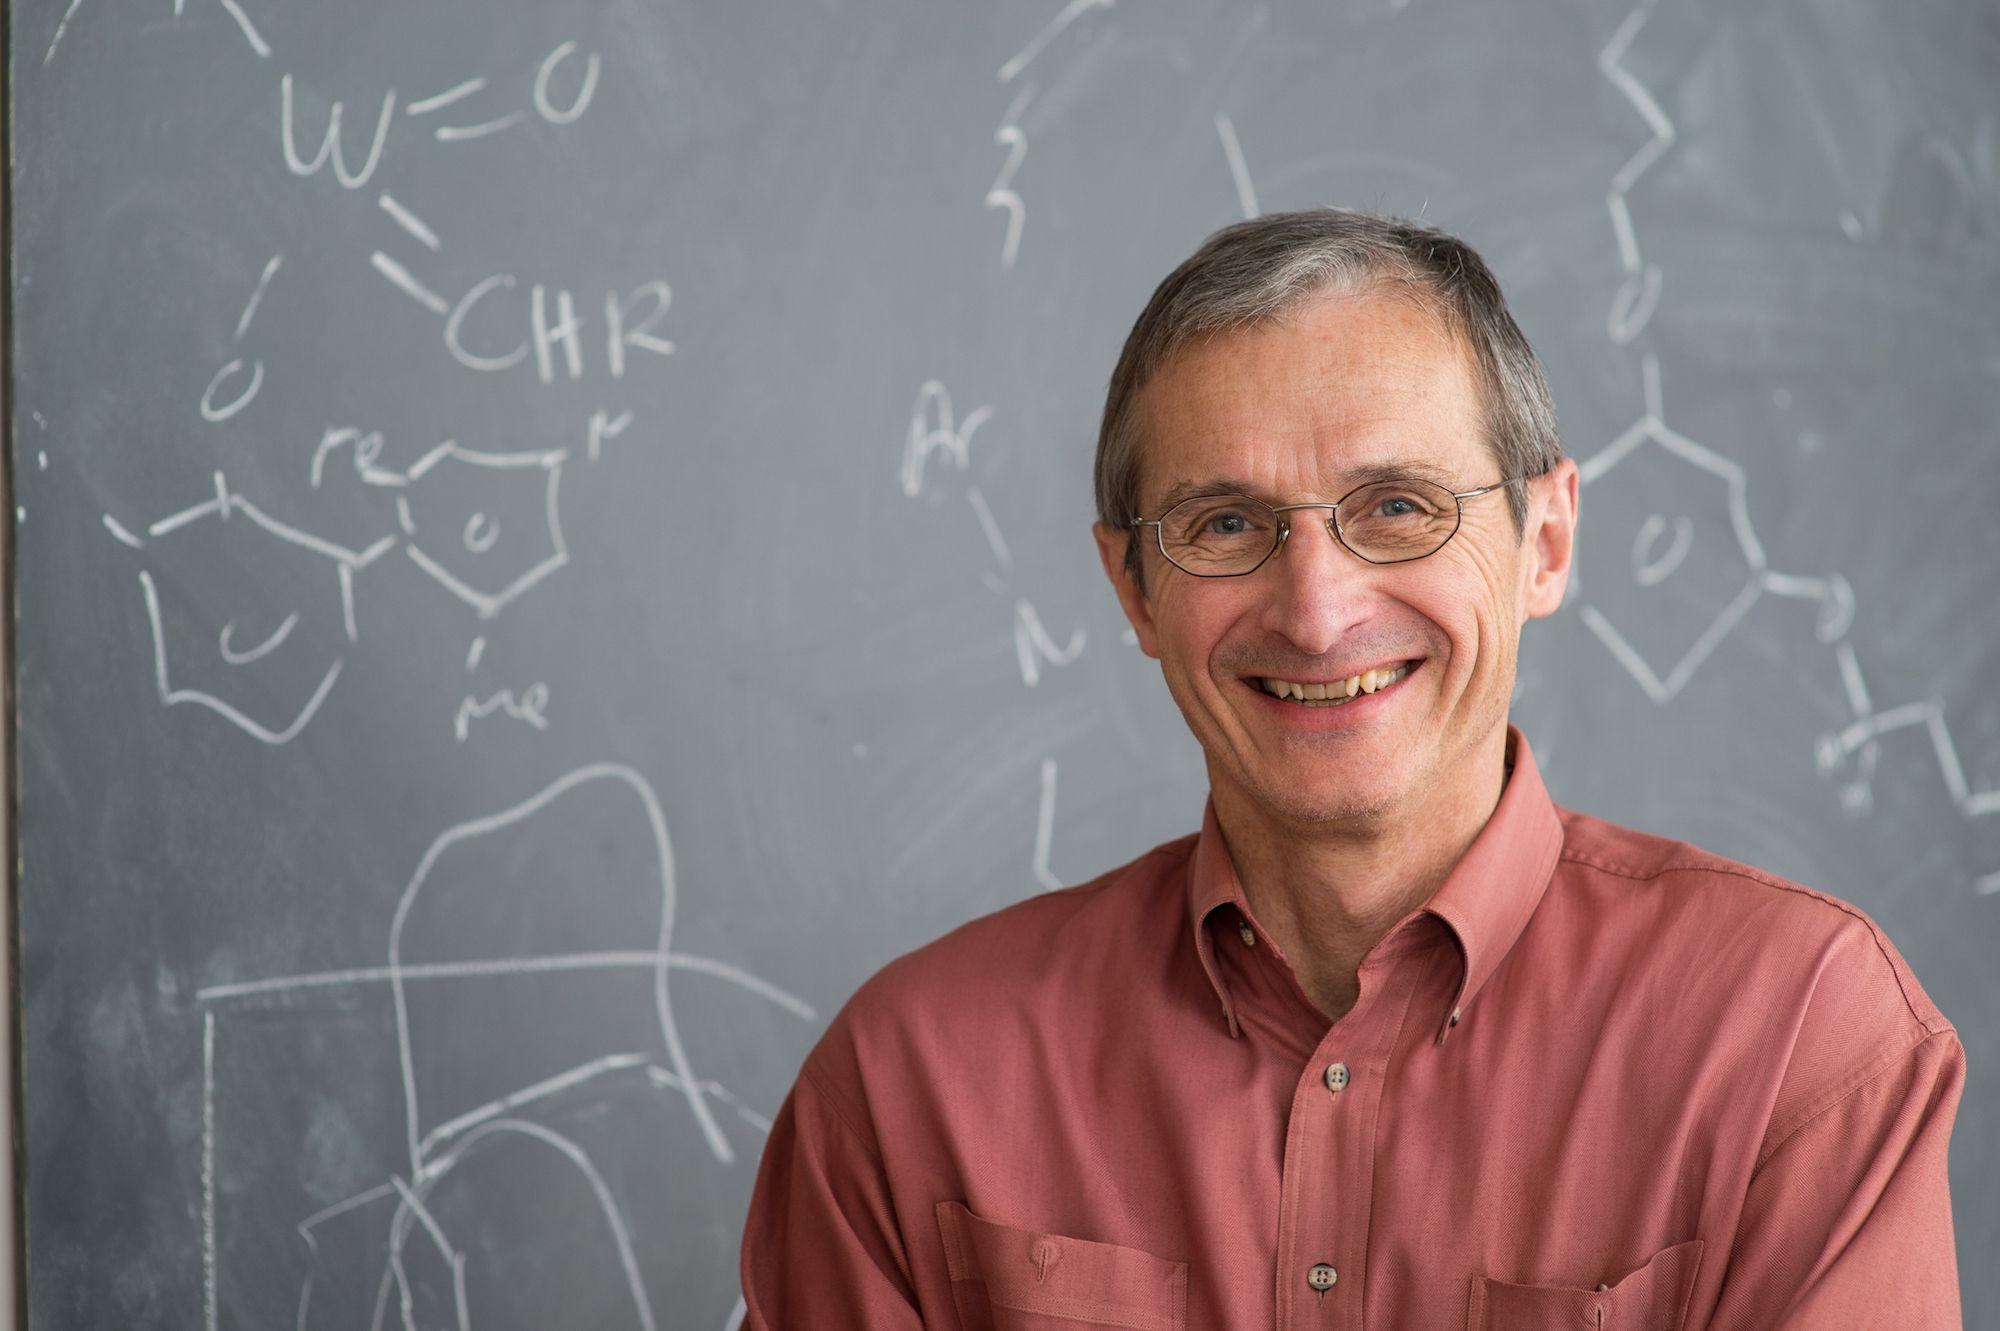 Professor Schrock smiles in front of a chalkboard of research